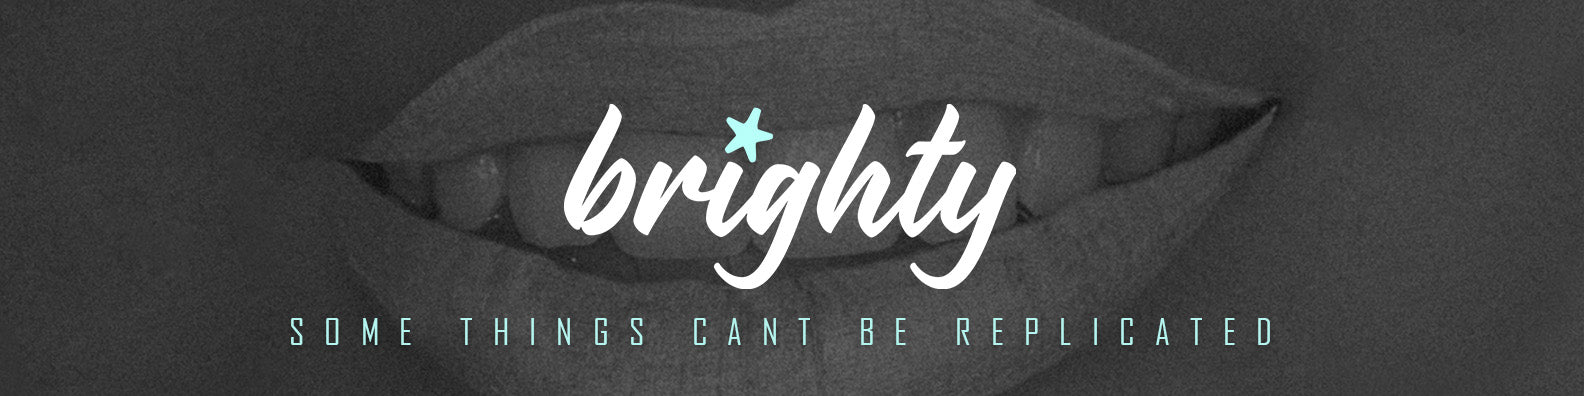 Brighty™ Teeth Whitening - Some things can't be replicated banner image.